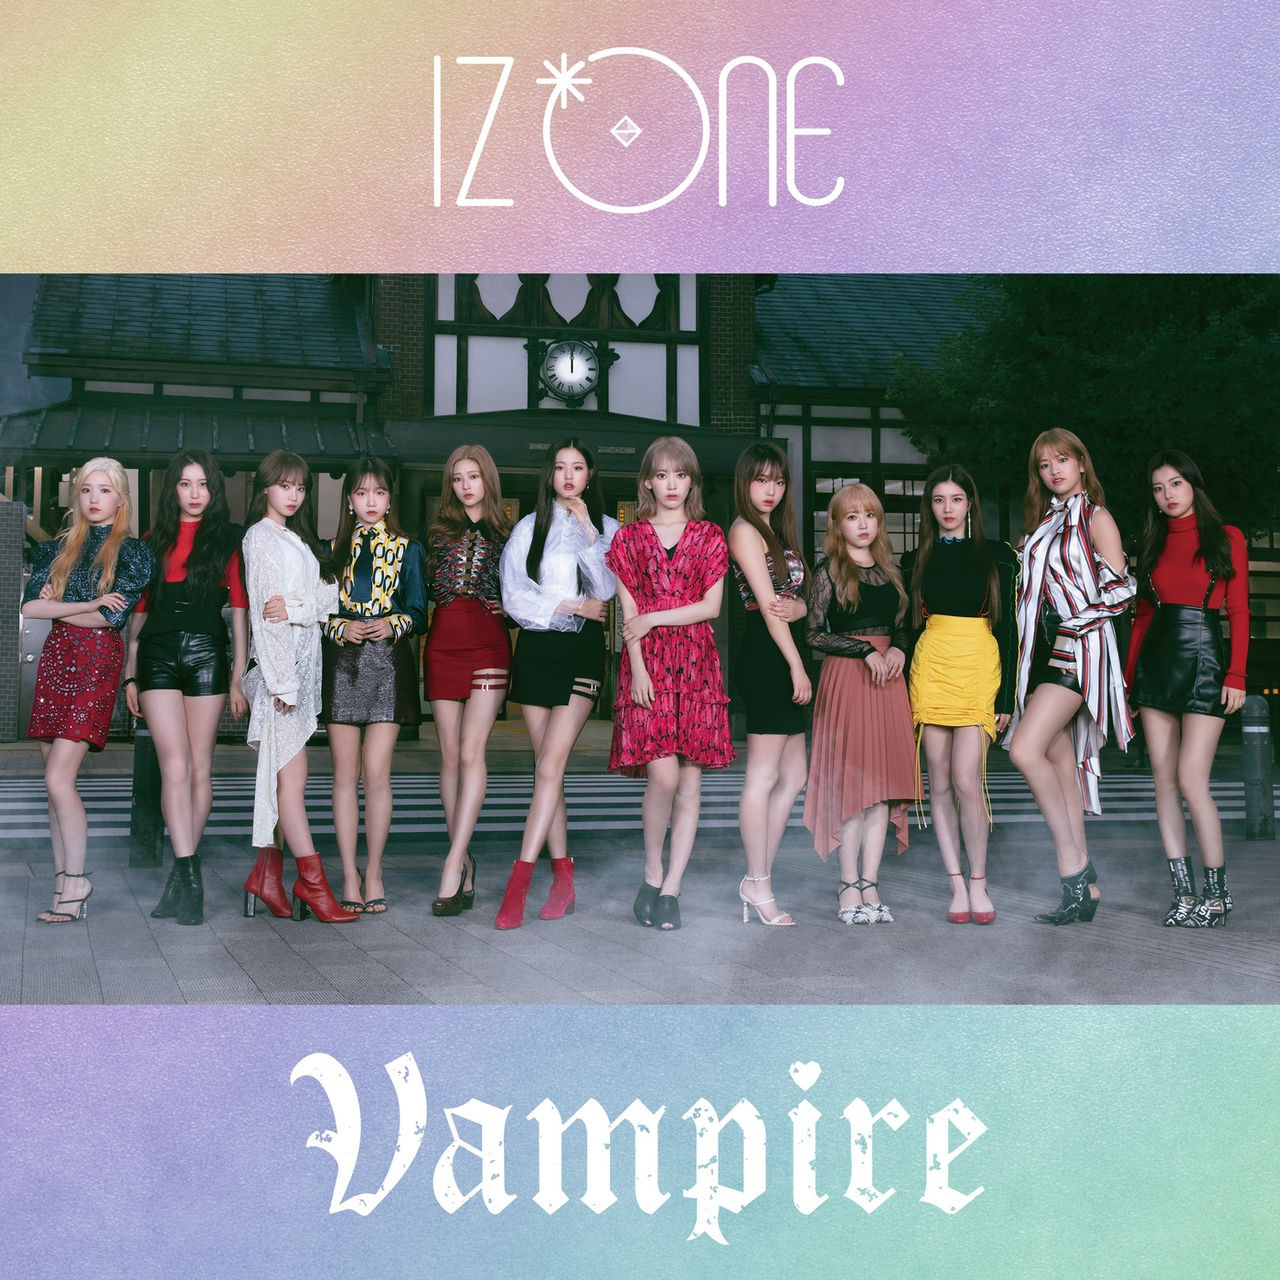 IZ*ONE – Vampire [FLAC + MP3 320 / WEB / Early release] [2019.09.25]